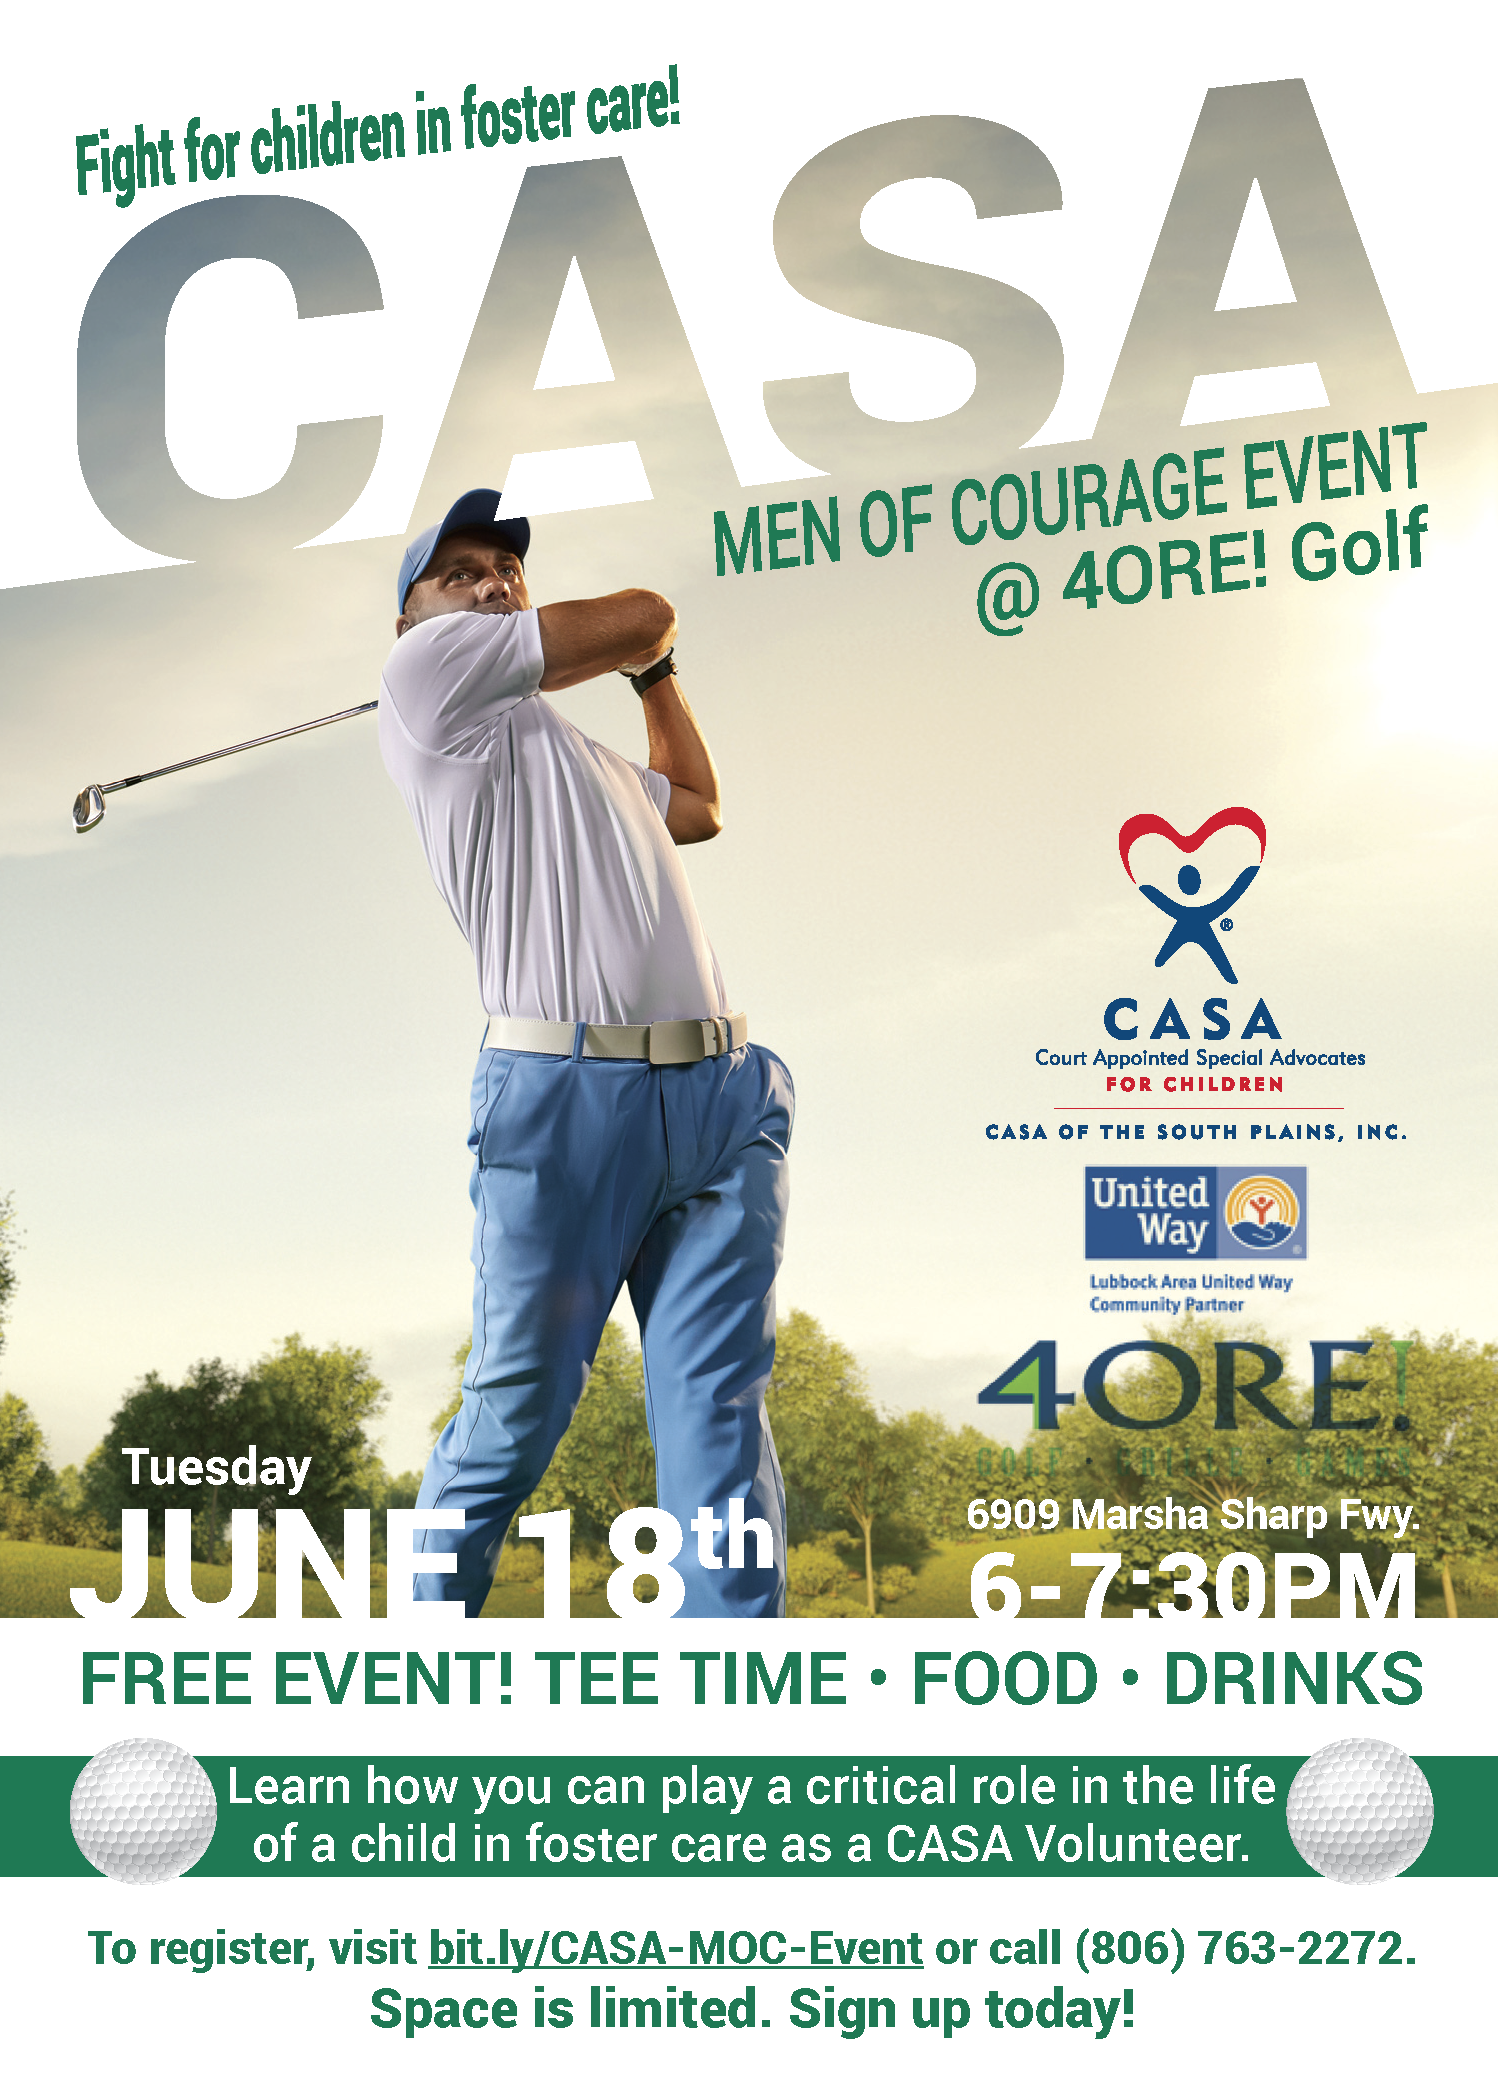 CASA Men of Courage Event at 4ORE! Golf